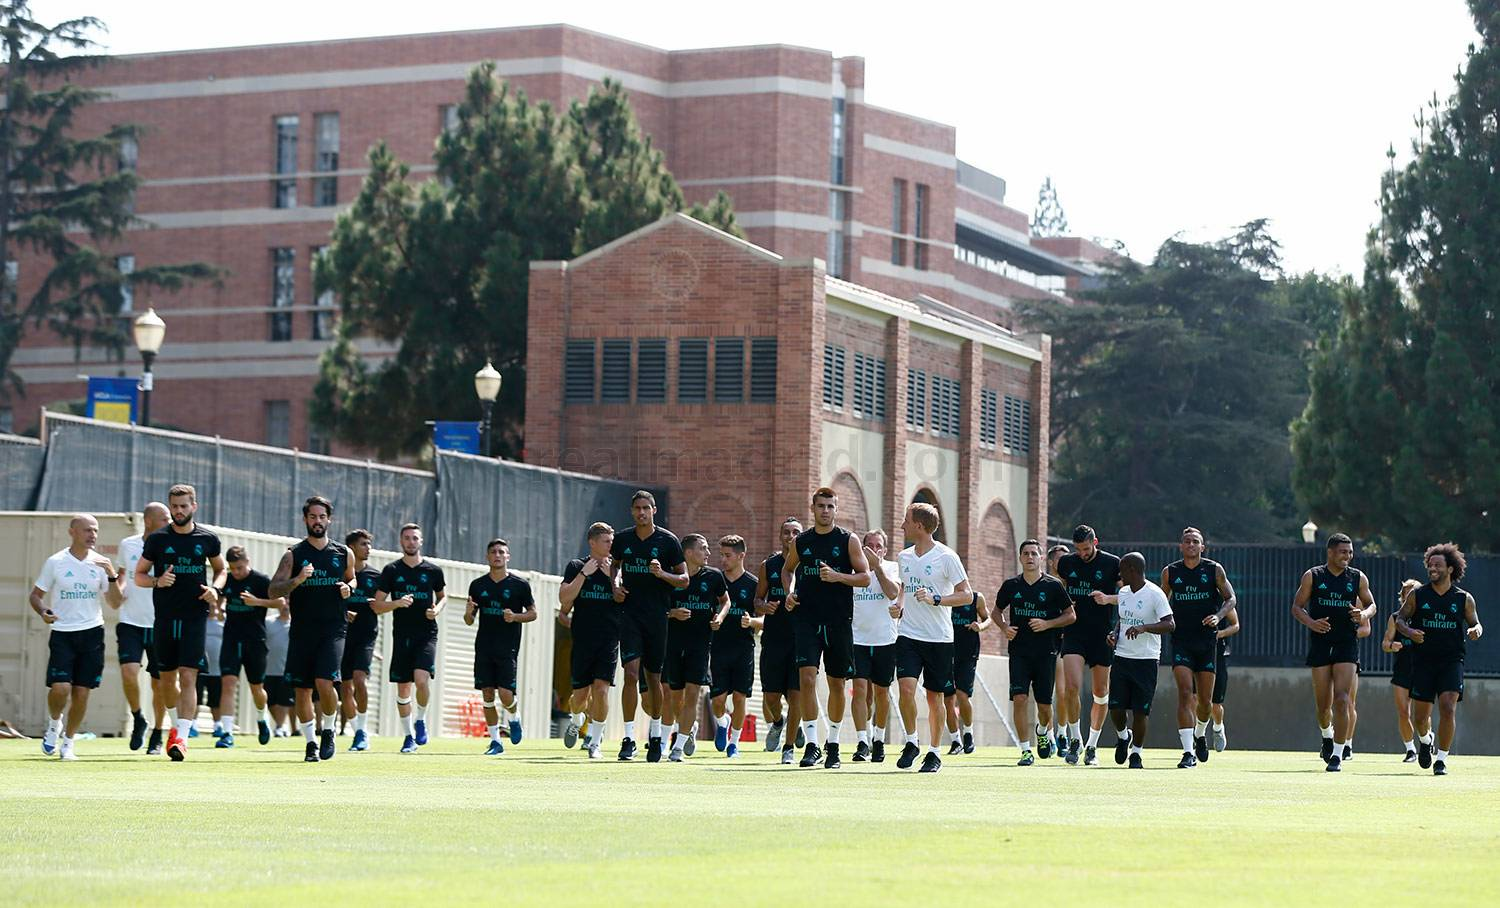 Real Madrid - Entrenamiento del Real Madrid en UCLA - 16-07-2017